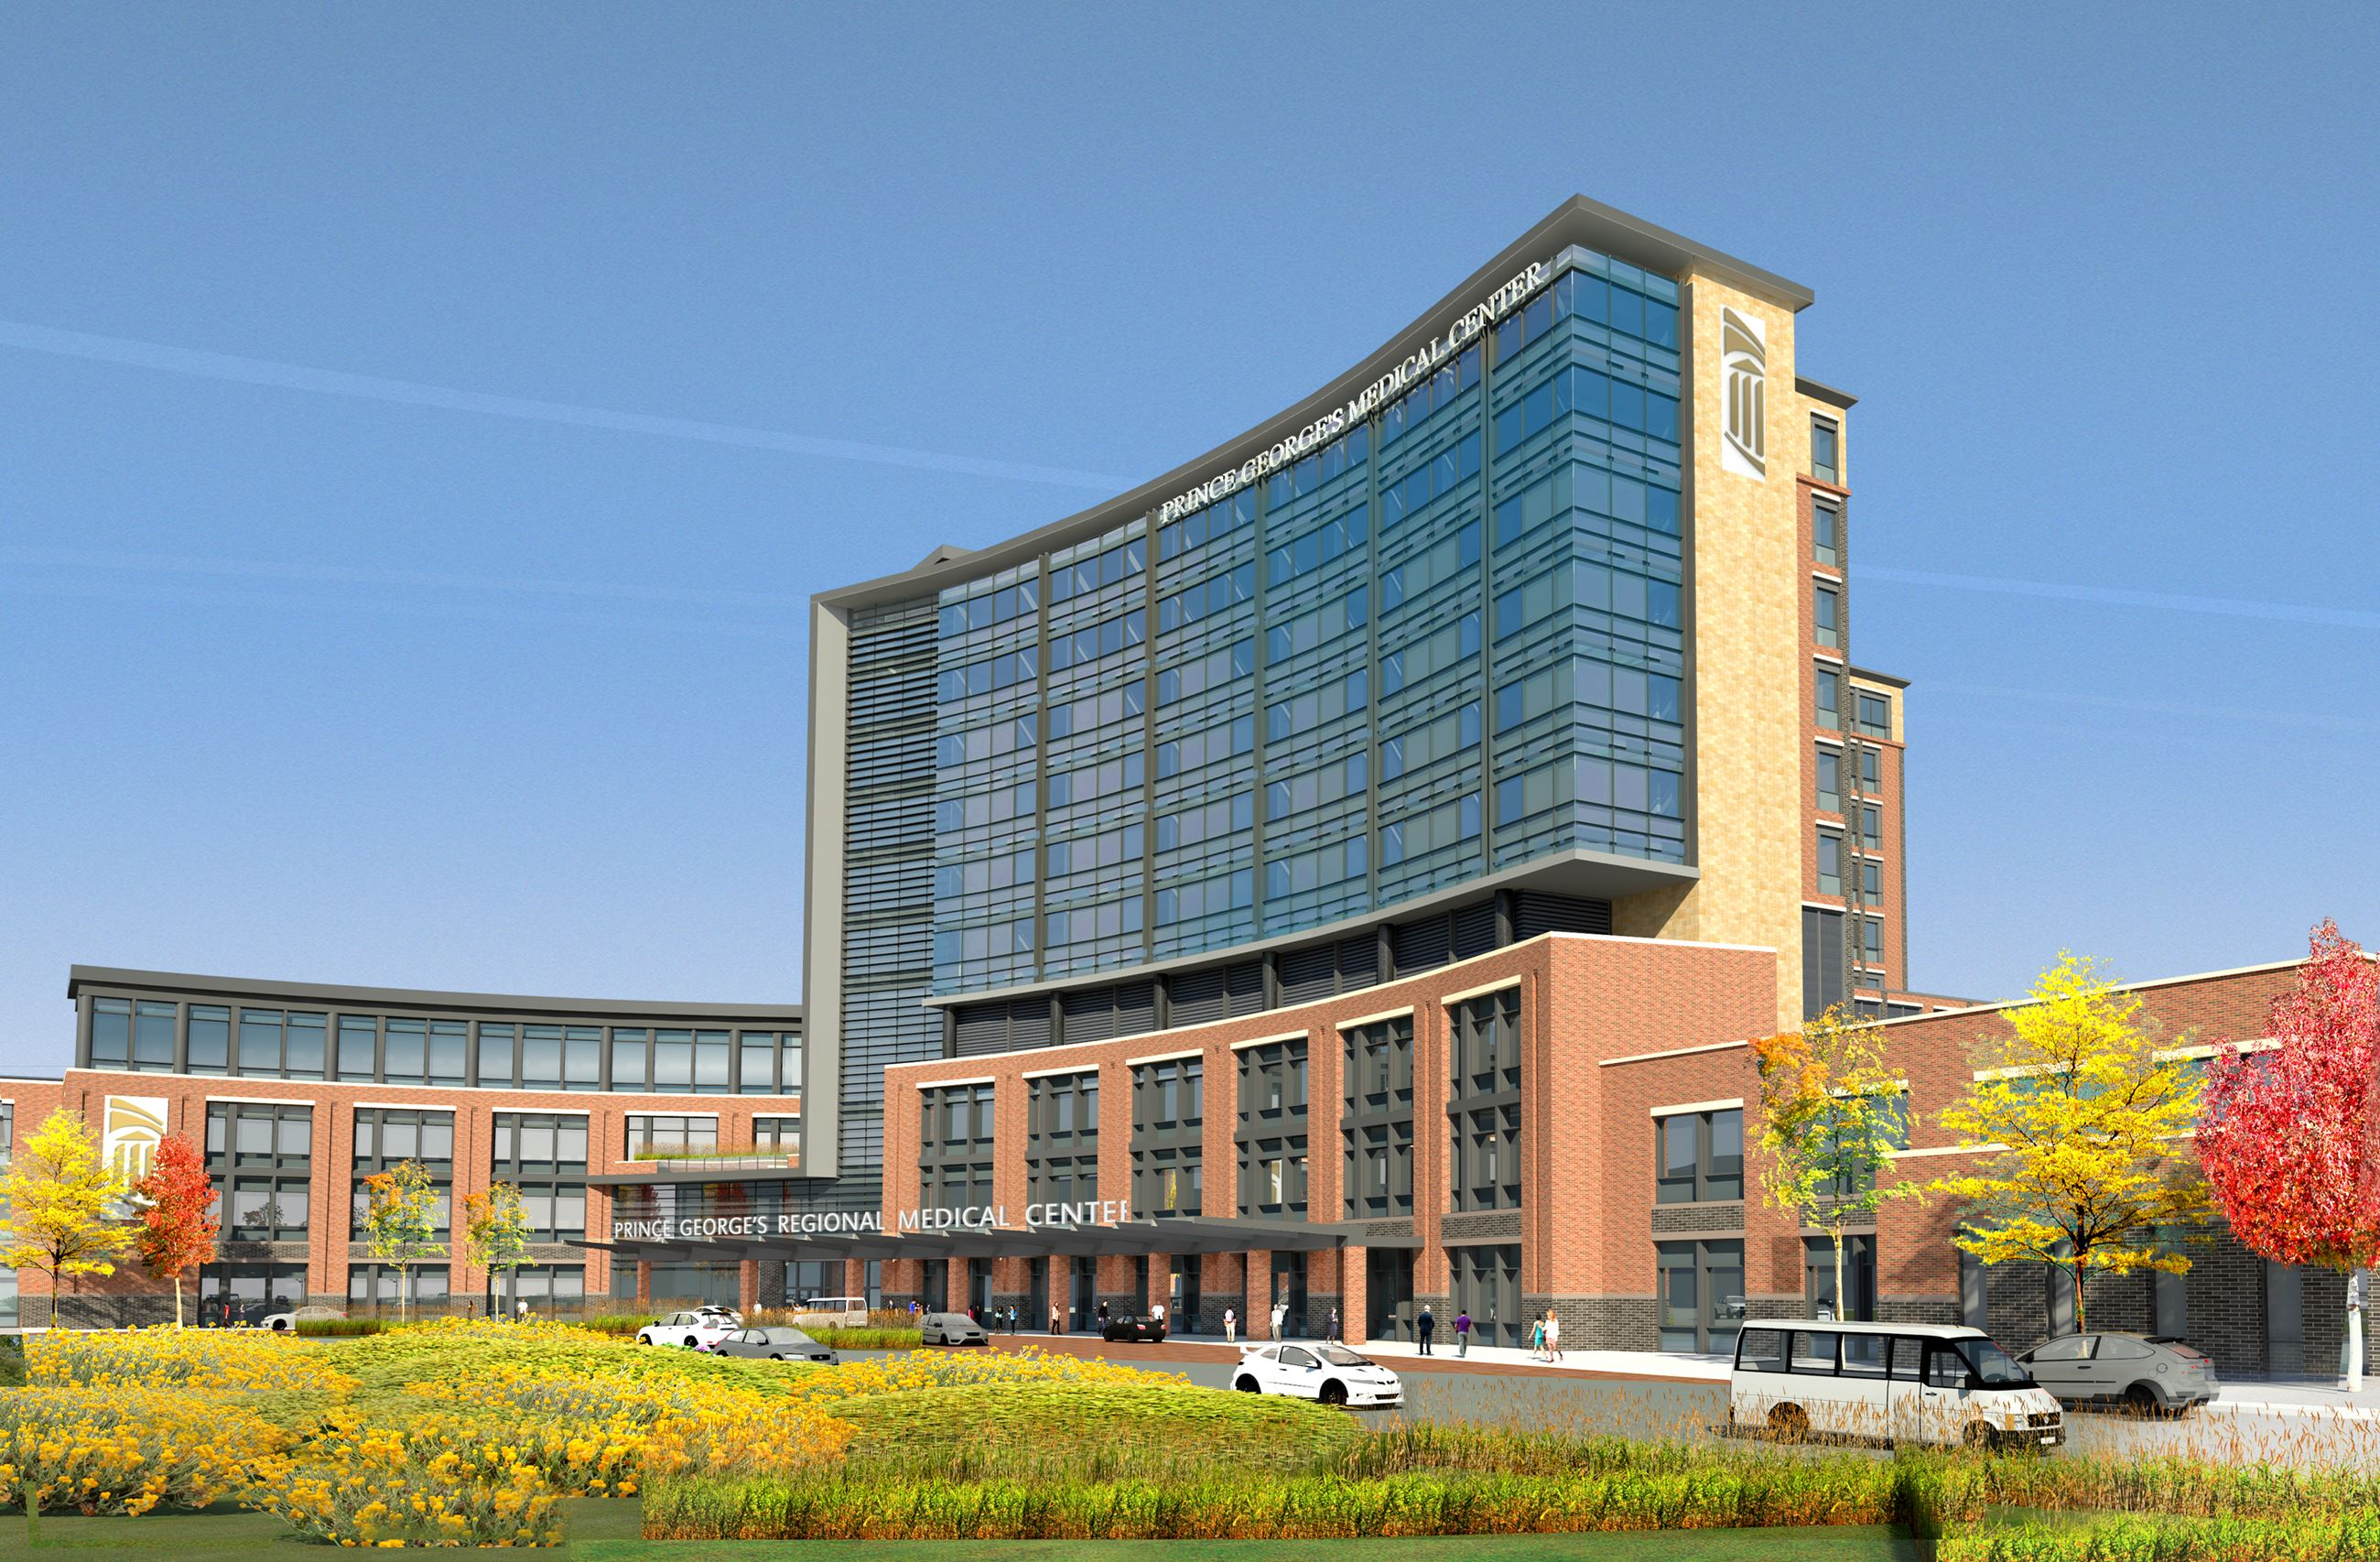 Rendering of the Regional Medical Center